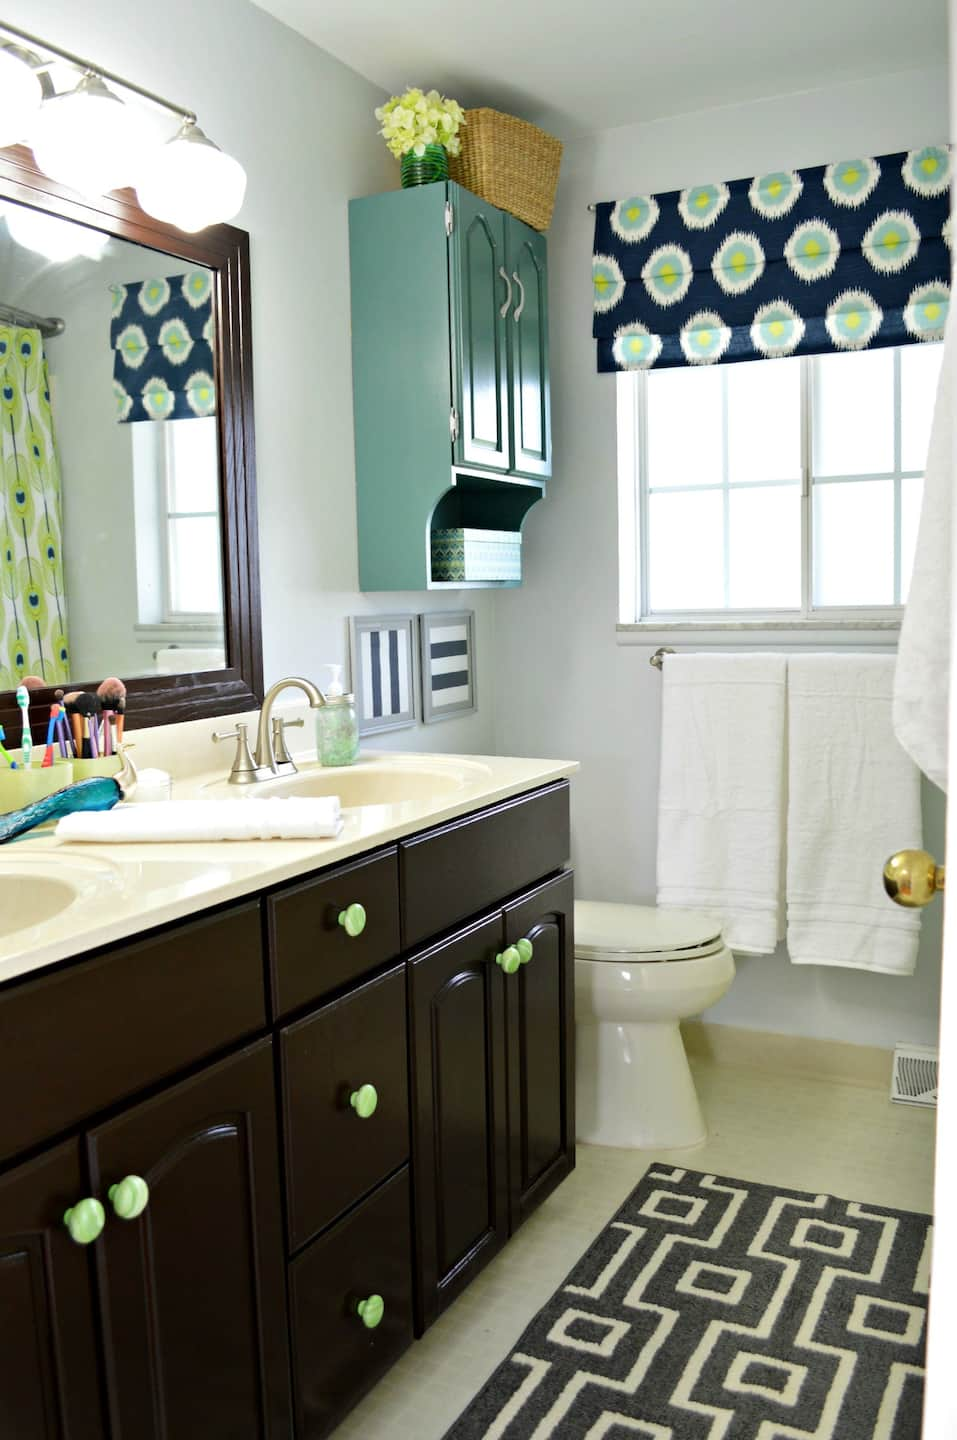 Neutral Walls And A Light Floor Allow You To Add Color In Curtains, Knobs,